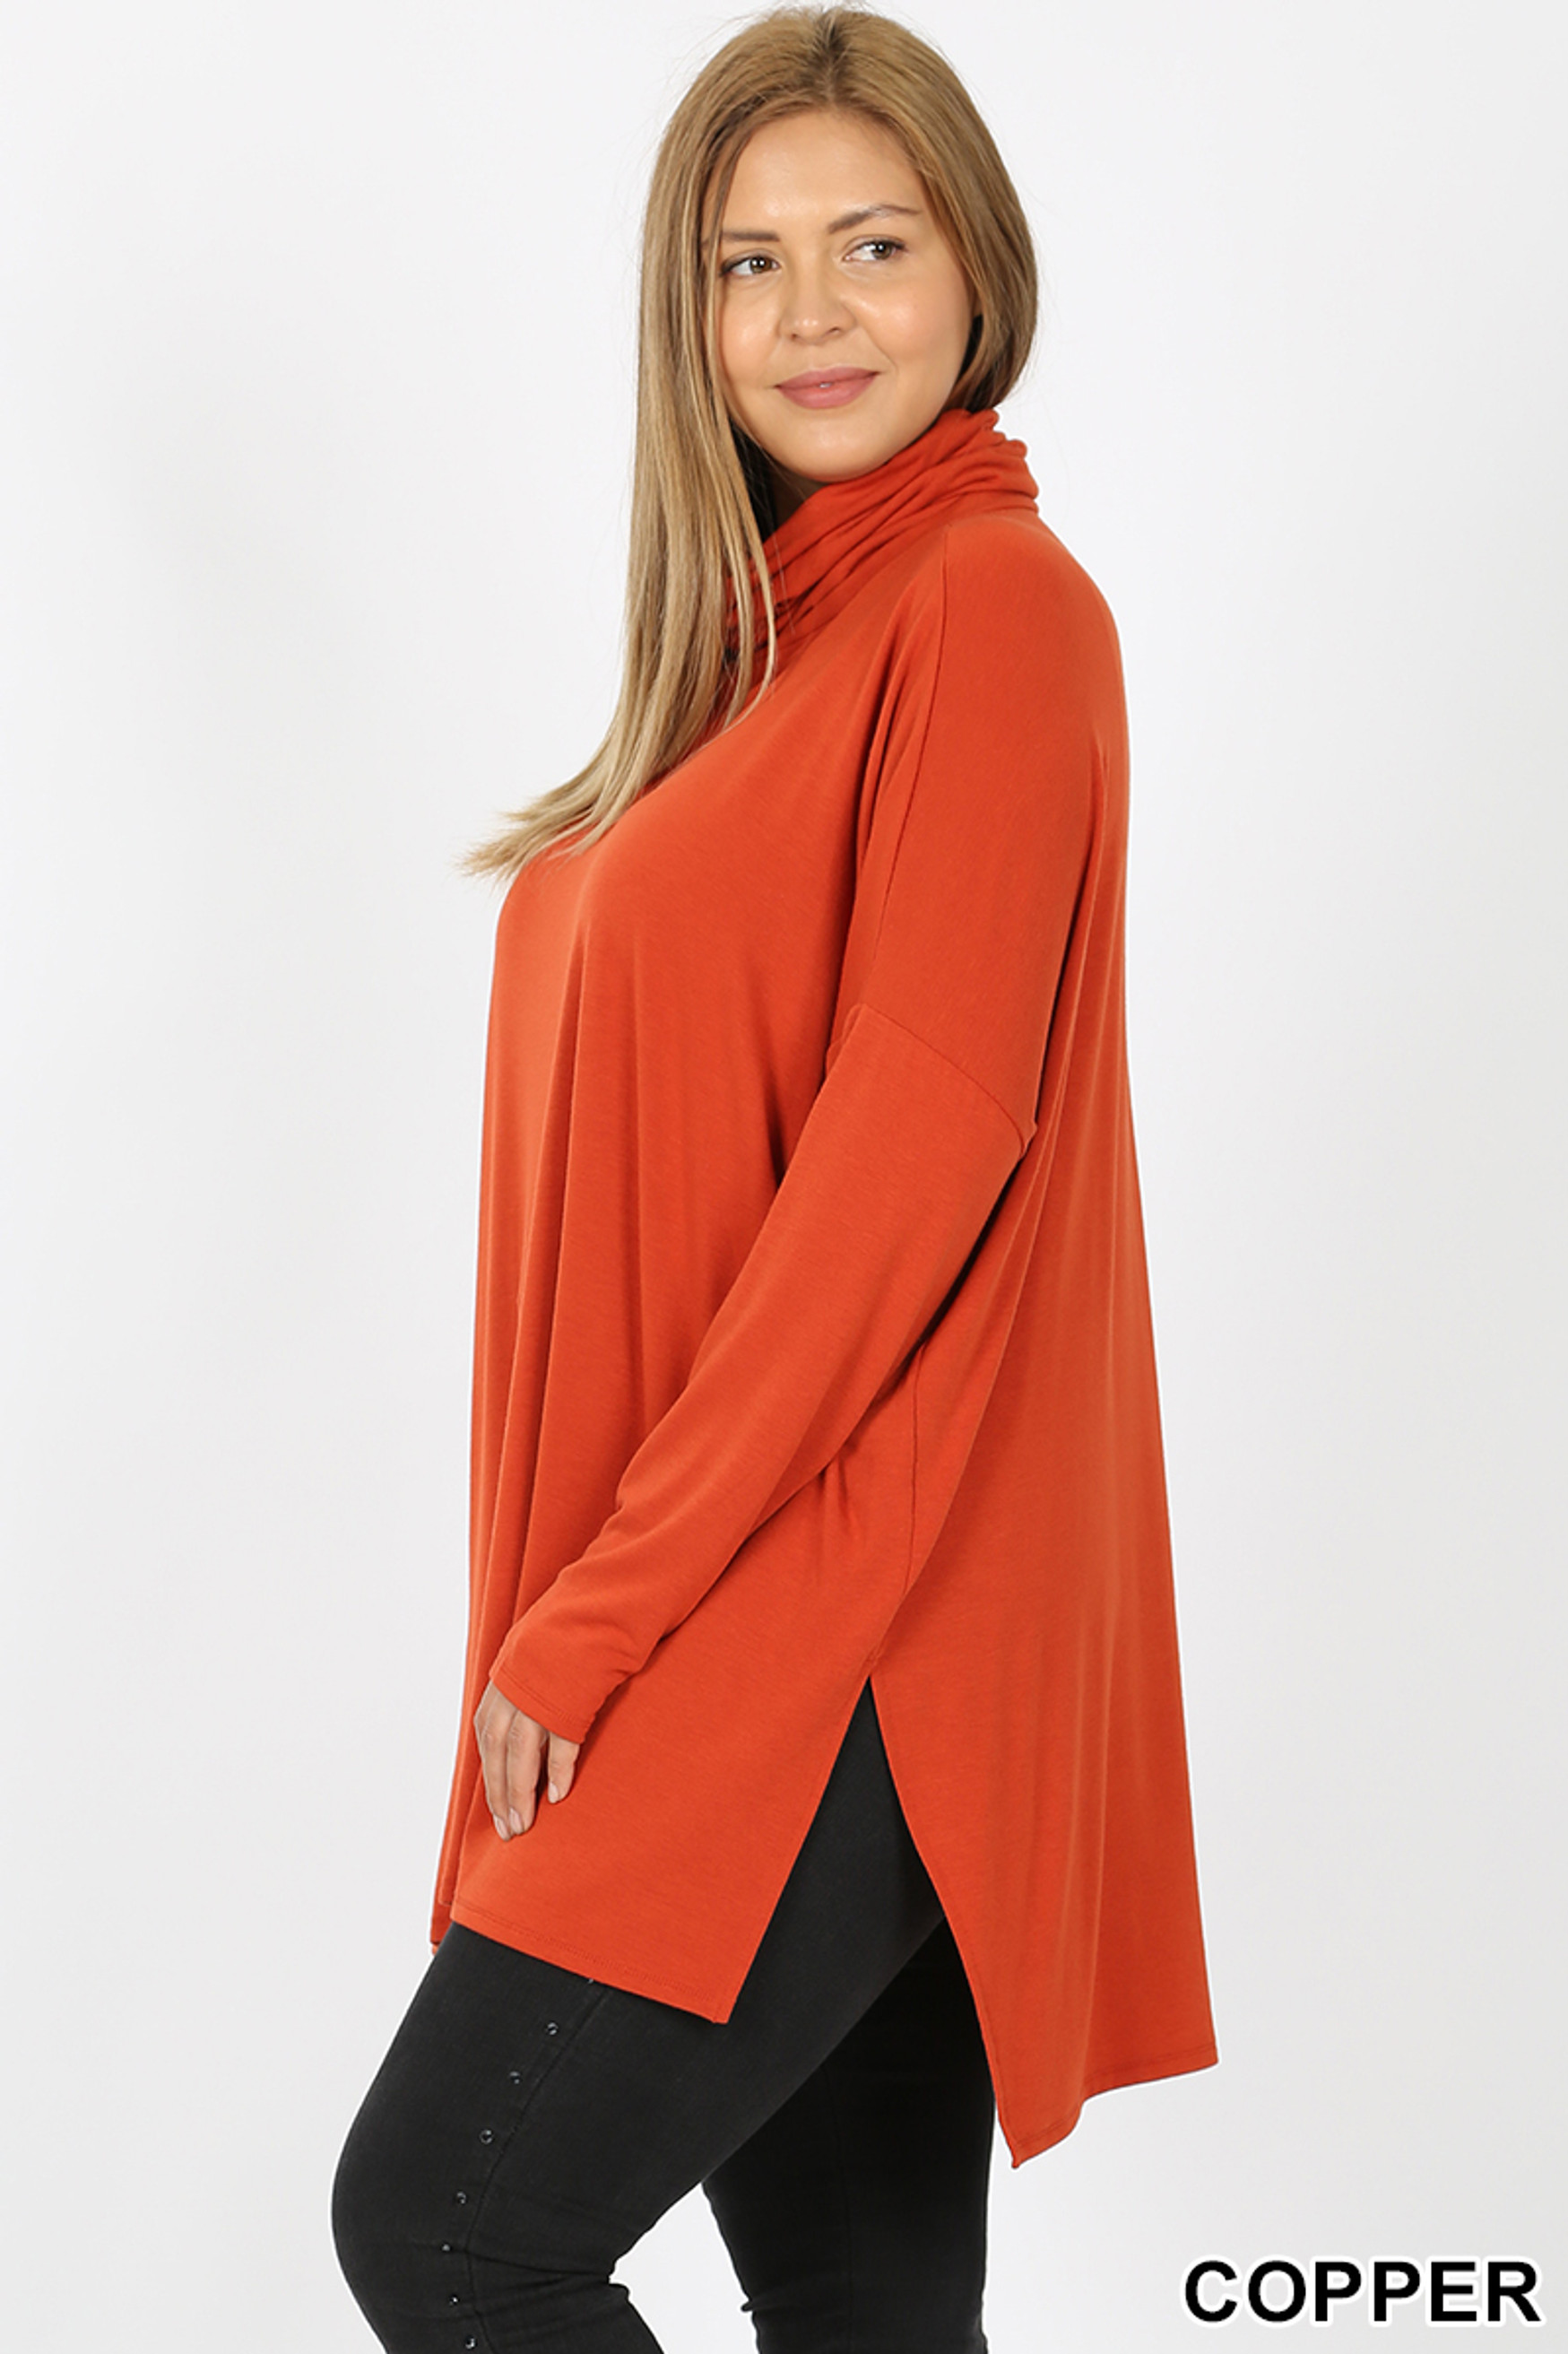 Left side image of Copper Rayon Cowl Neck Dolman Sleeve Plus Size Top